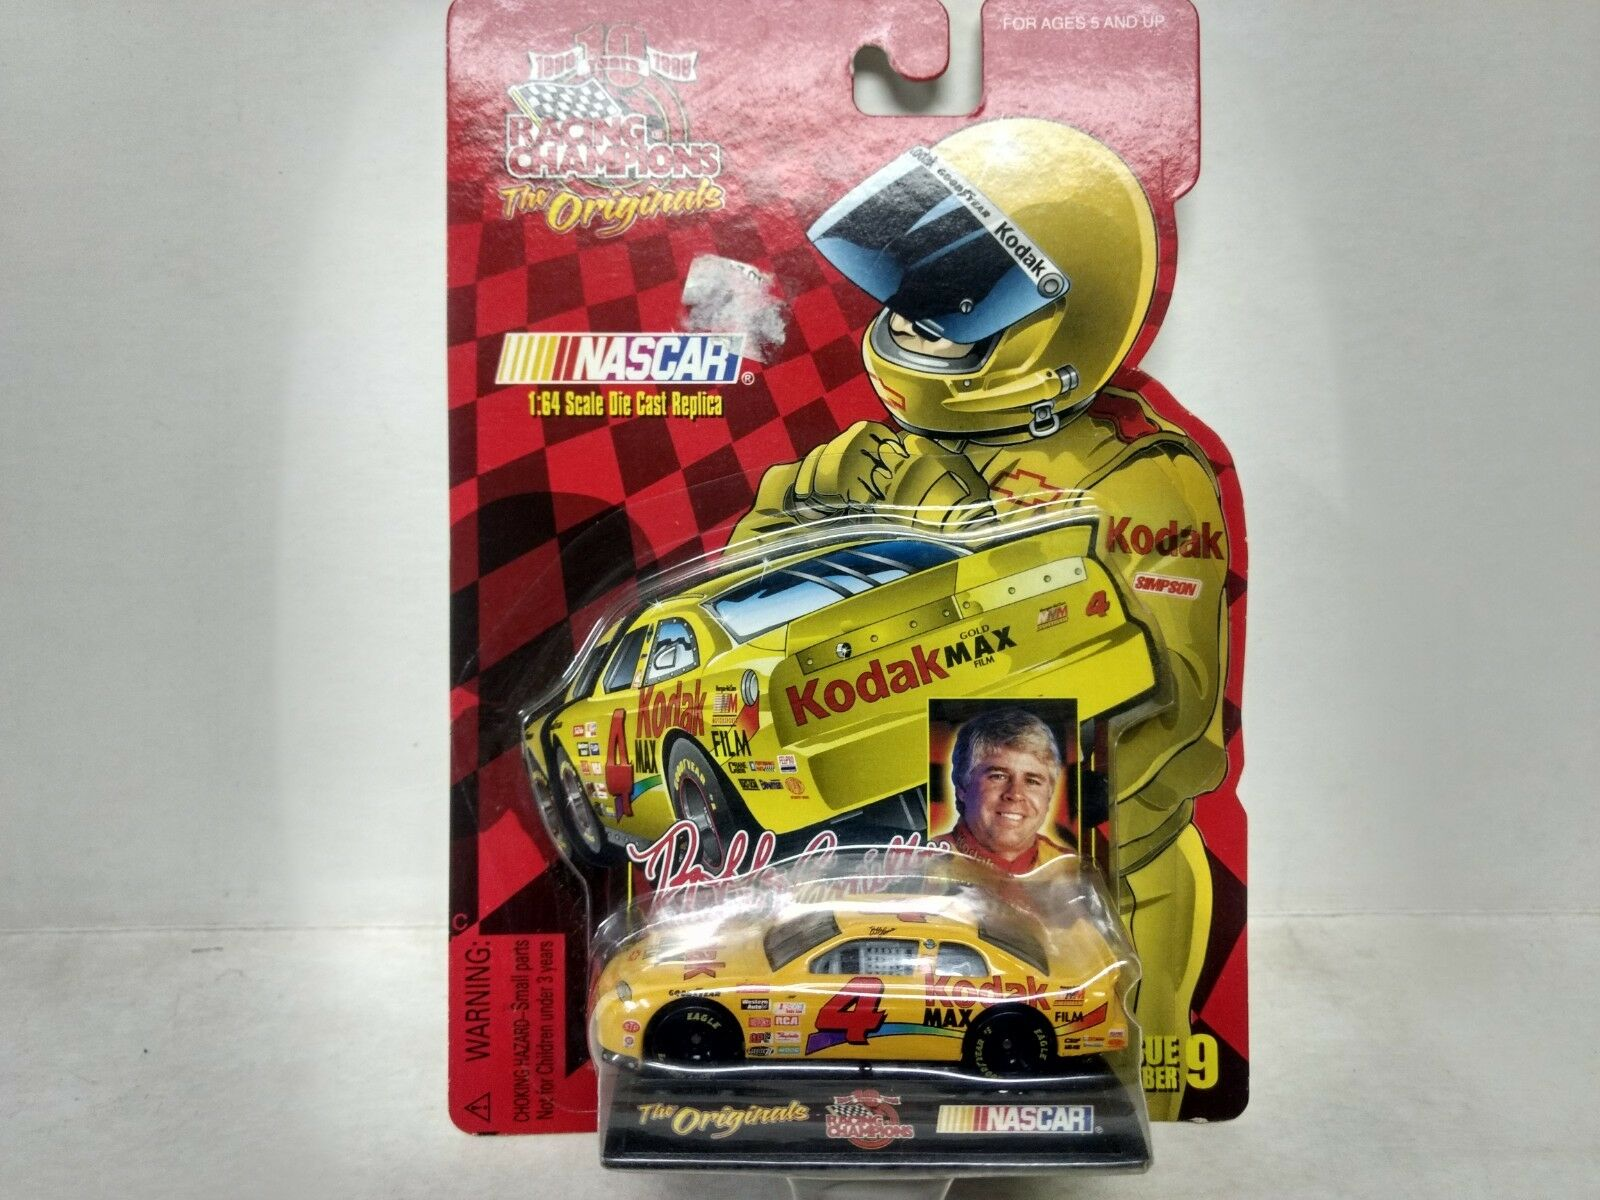 Racing Champions The Originals Bobby Hamilton Kodak 1 64 Skala-Modelle Mb276